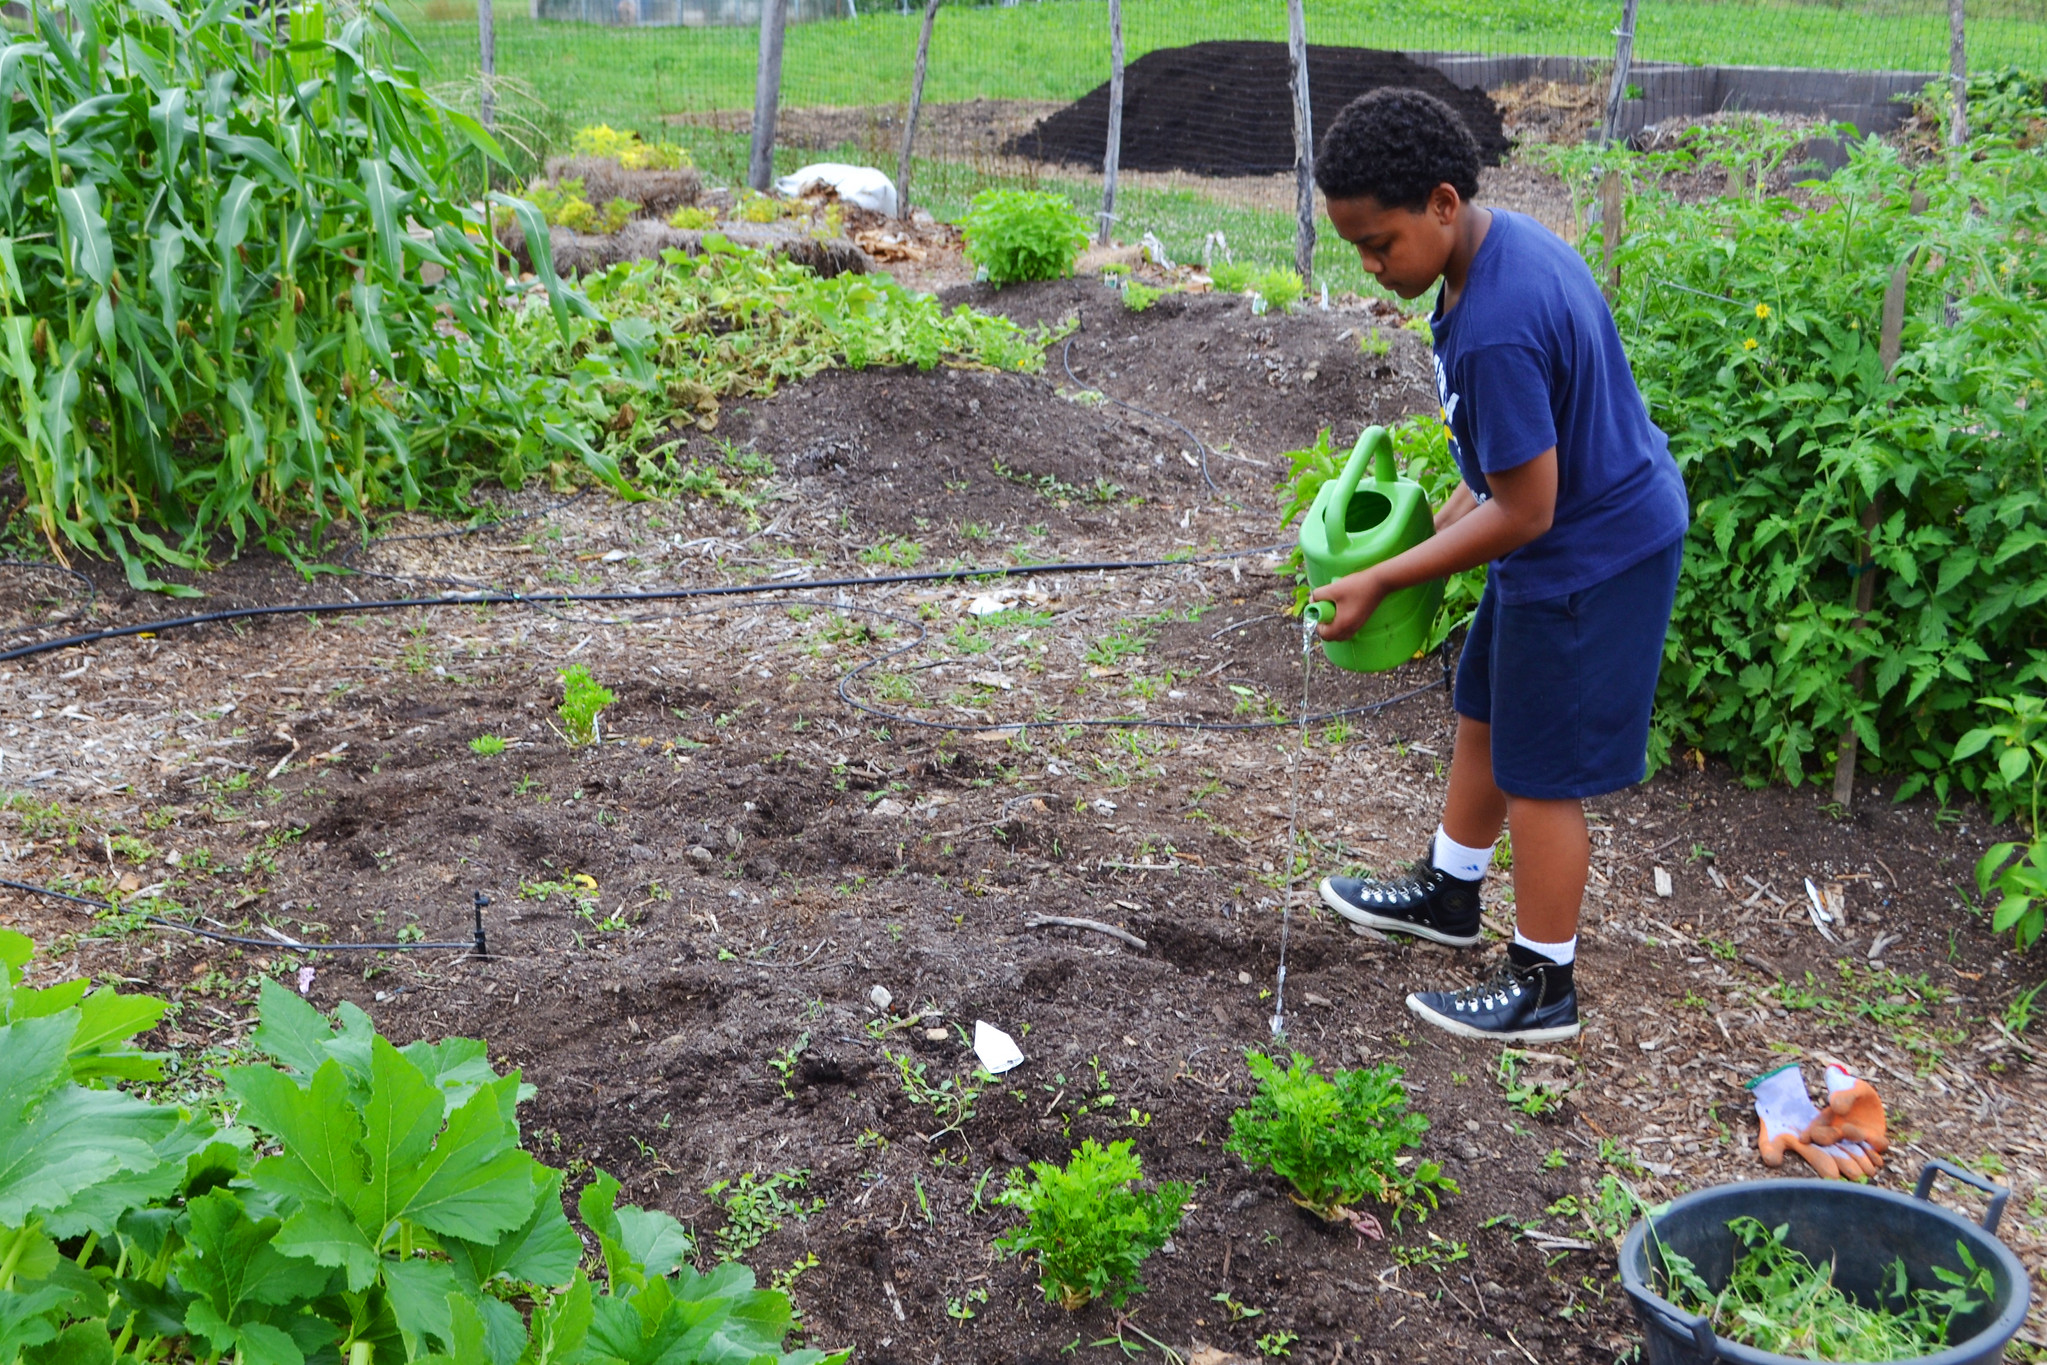 Grow your own with a Victory Garden this summer